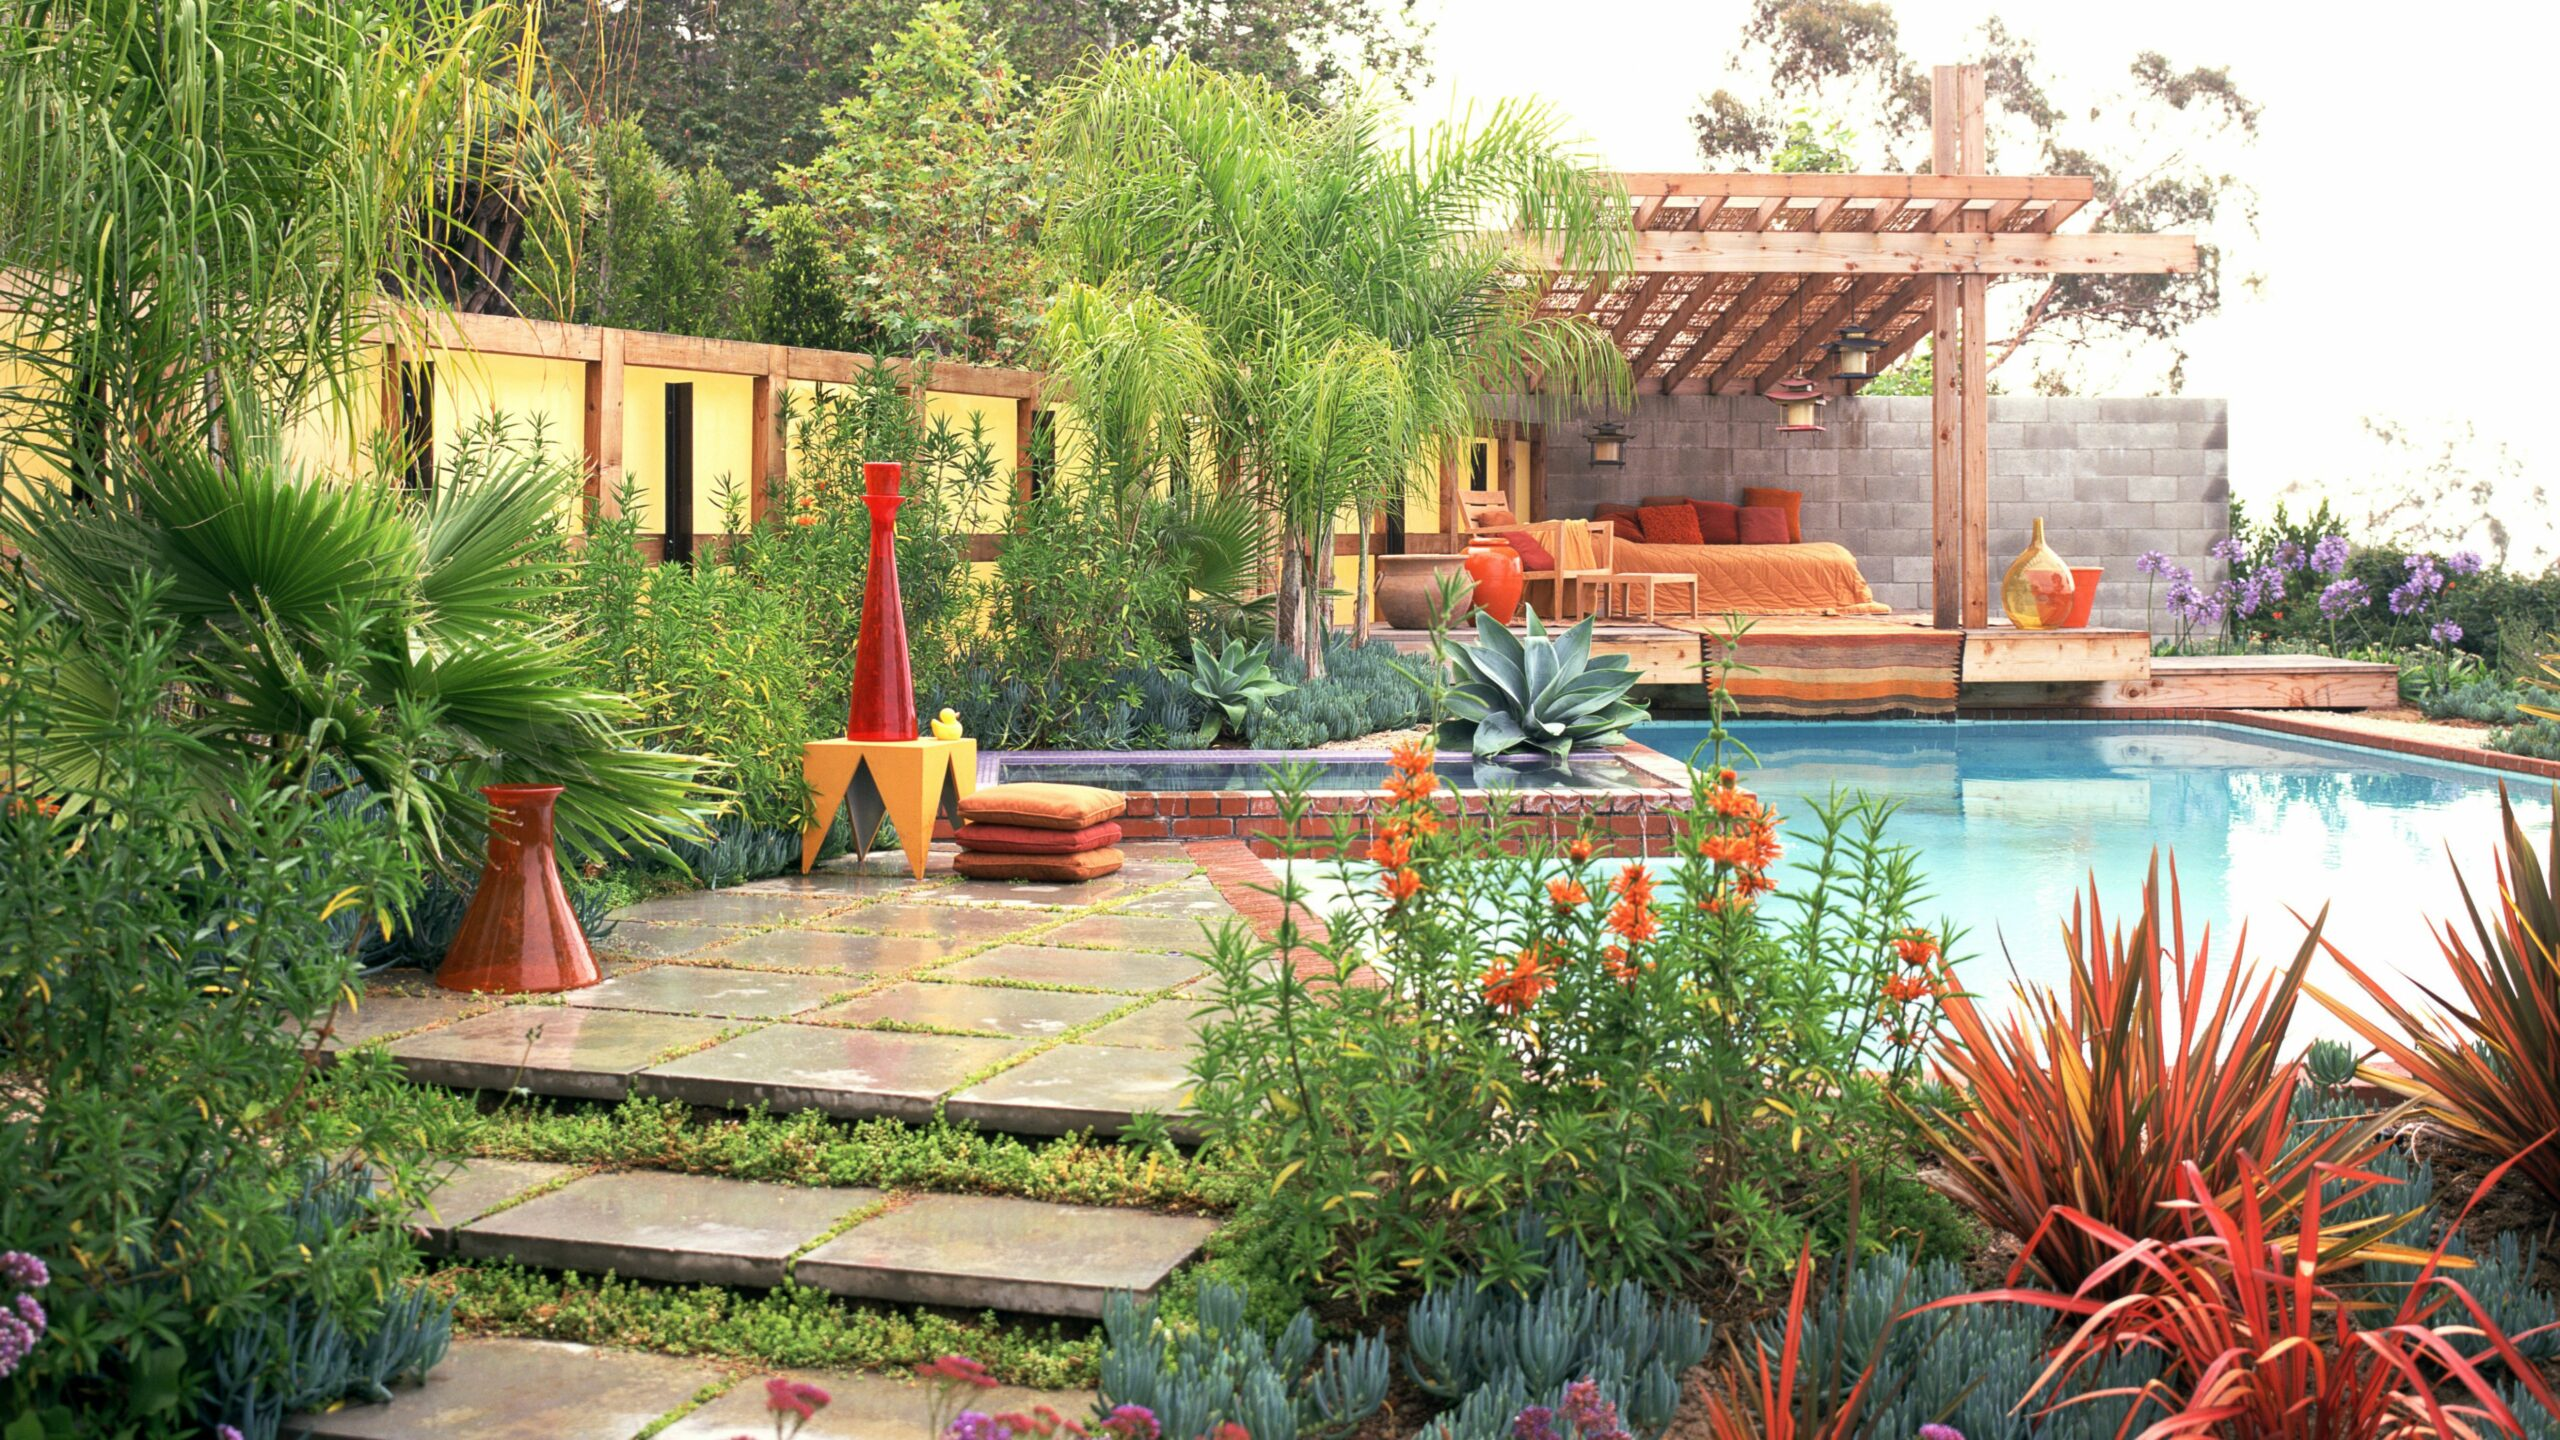 Landscaping Ideas for Pool Areas - pool landscaping ideas for privacy